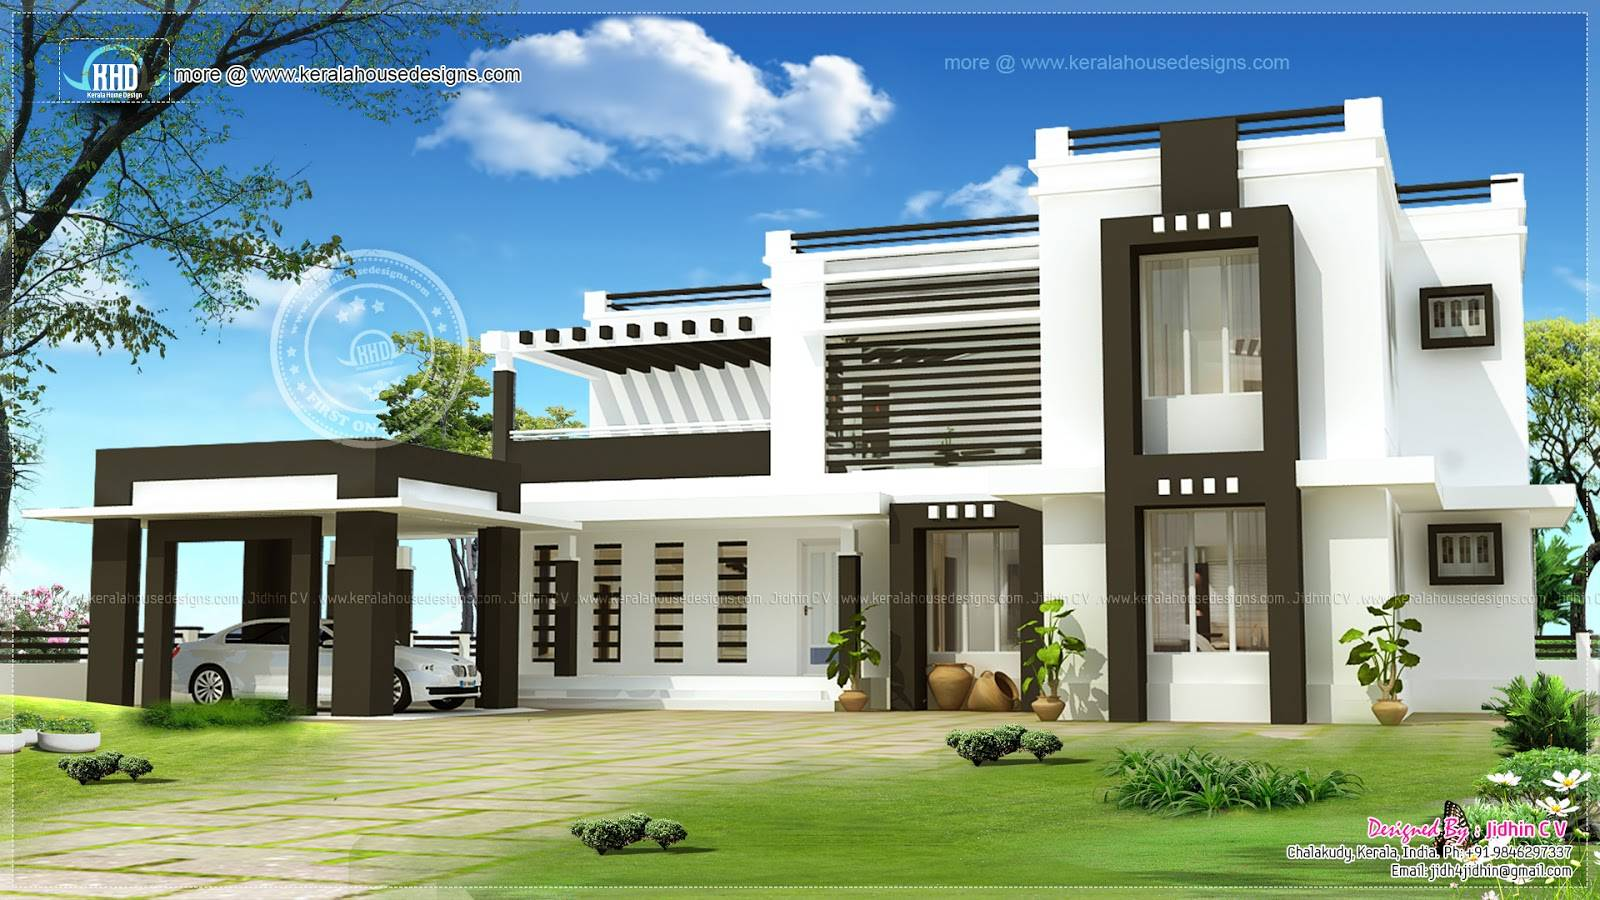 Flat Roof House Exterior Kerala Home Design Floor Plans House Plans 77891